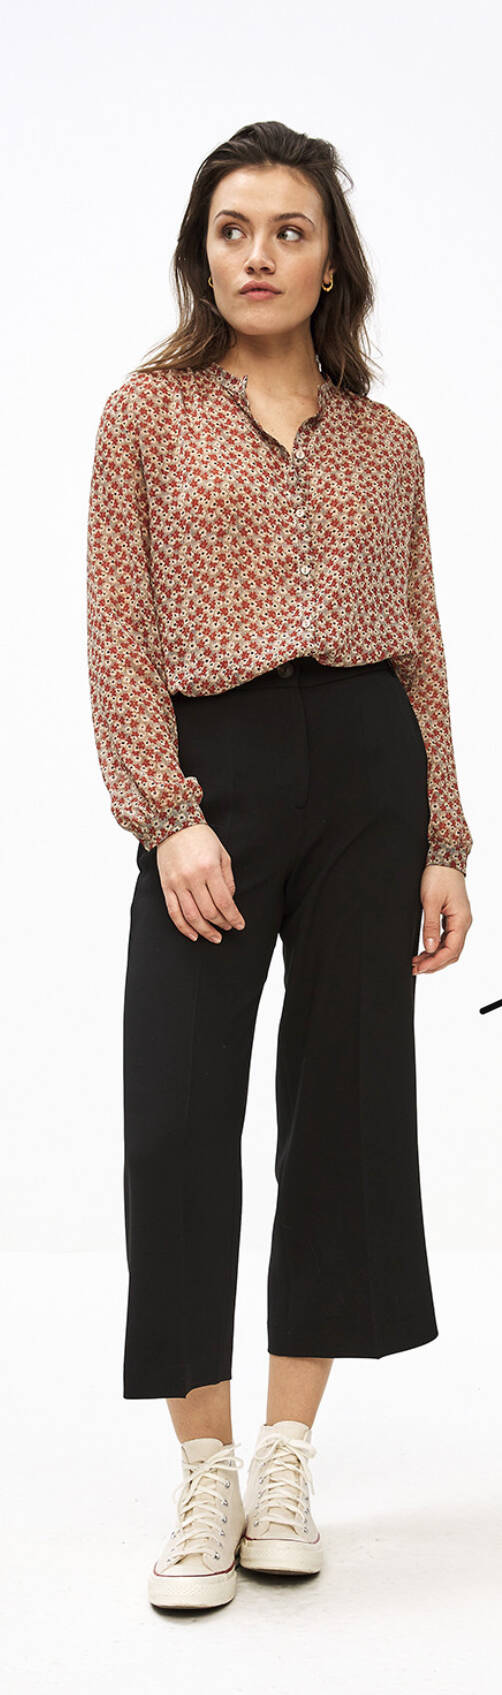 Cato small flower blouse